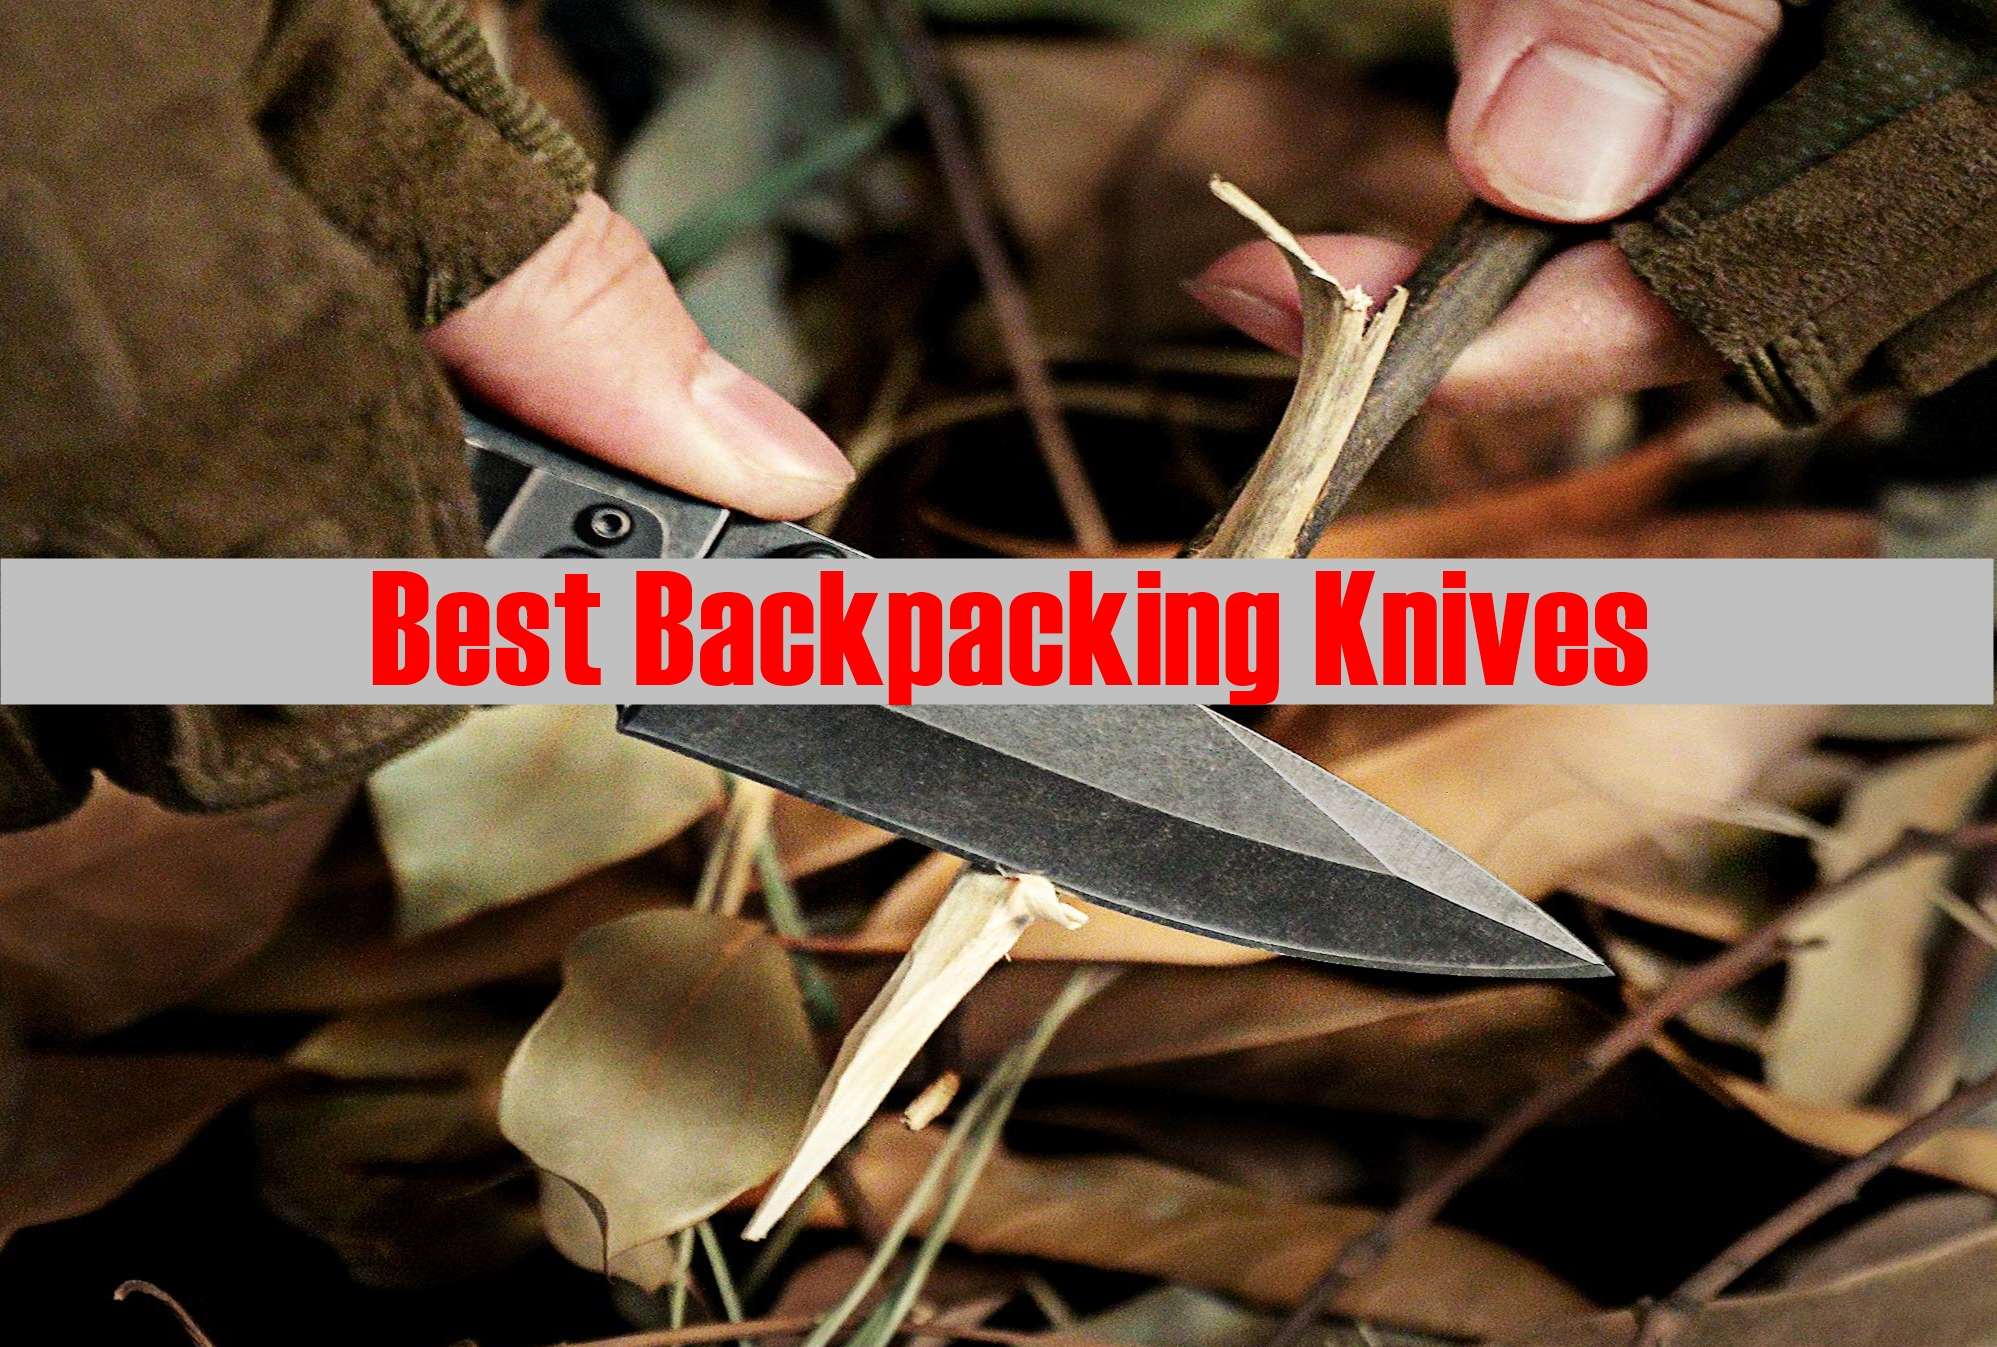 The 5 Best Backpacking Knives